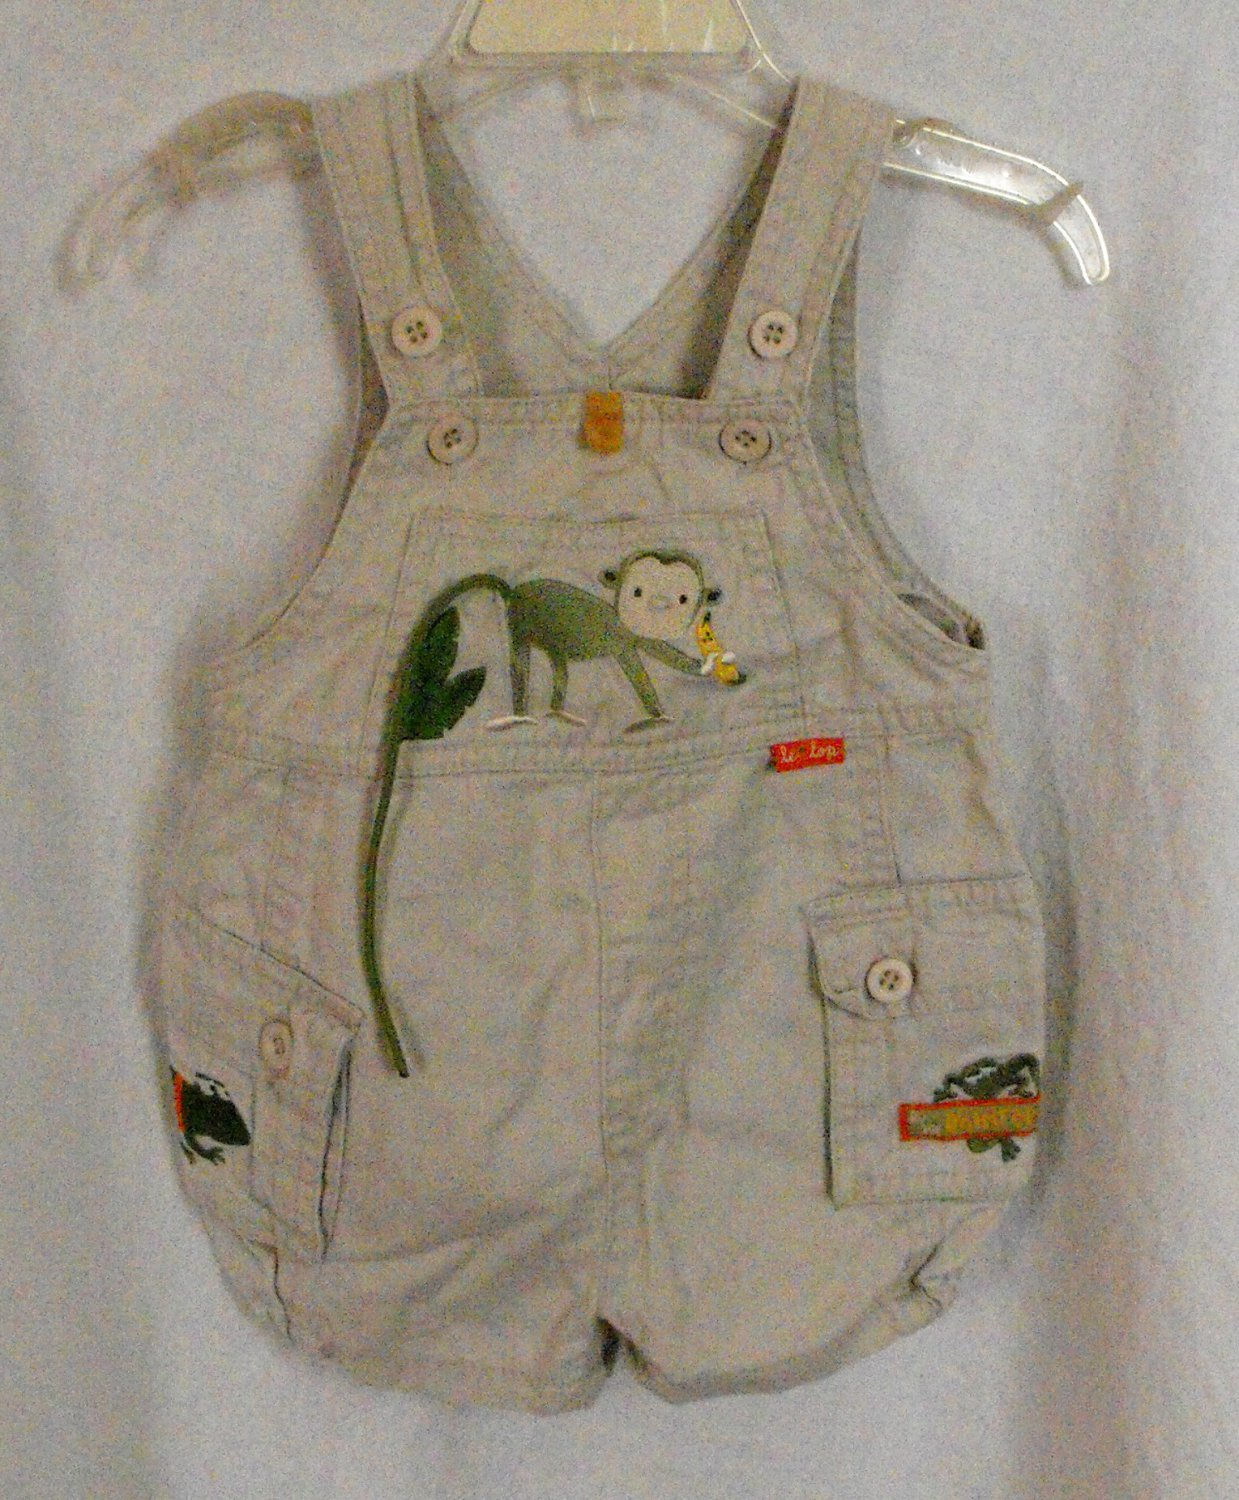 Le Togs Baby Boy 3 Month Romper Overall Bibs